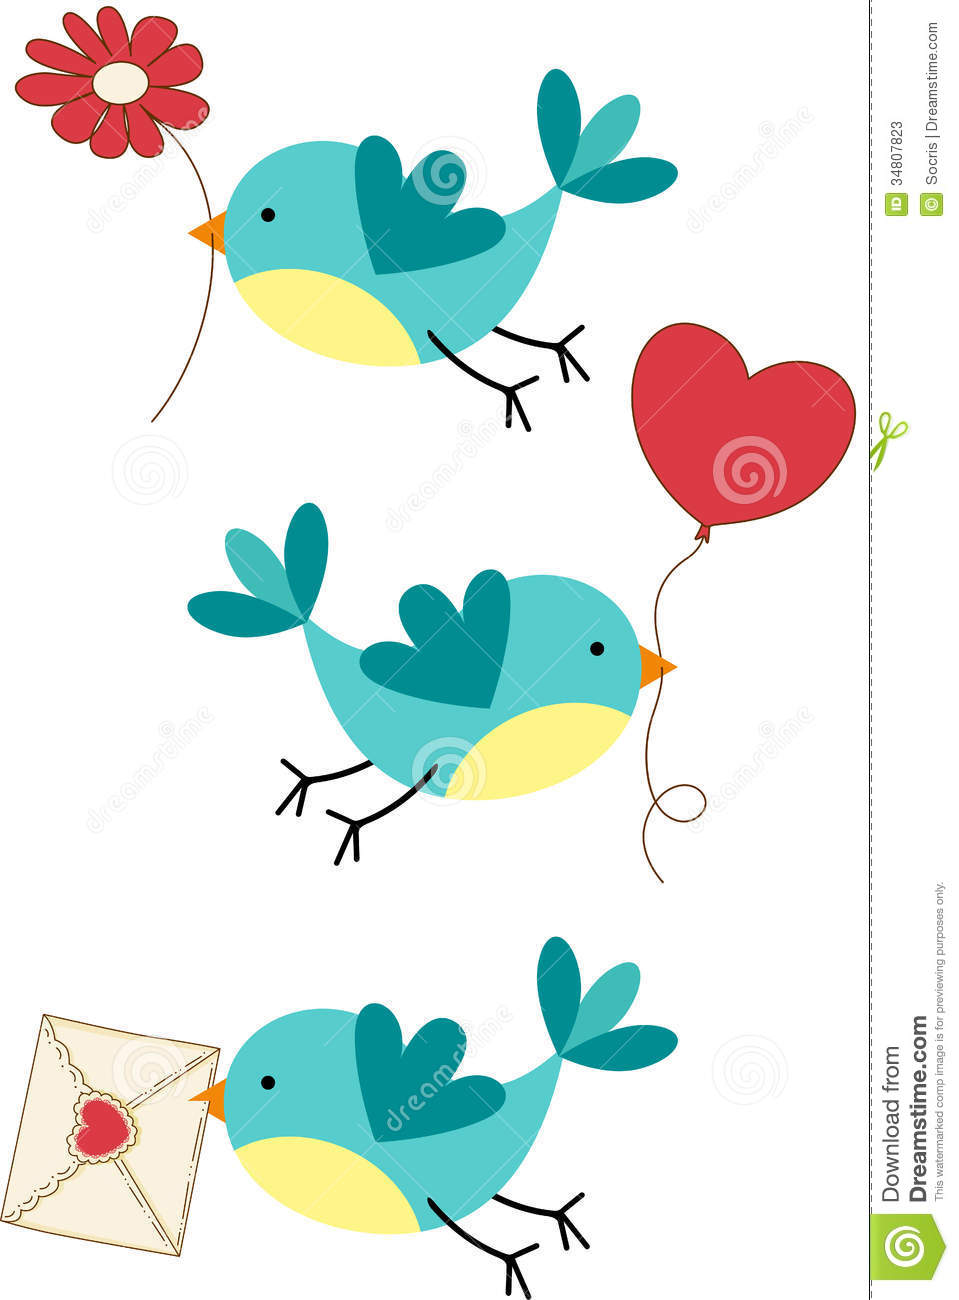 Love clipart mint gree clipart free download Mint green love bird clipart - ClipartFest clipart free download